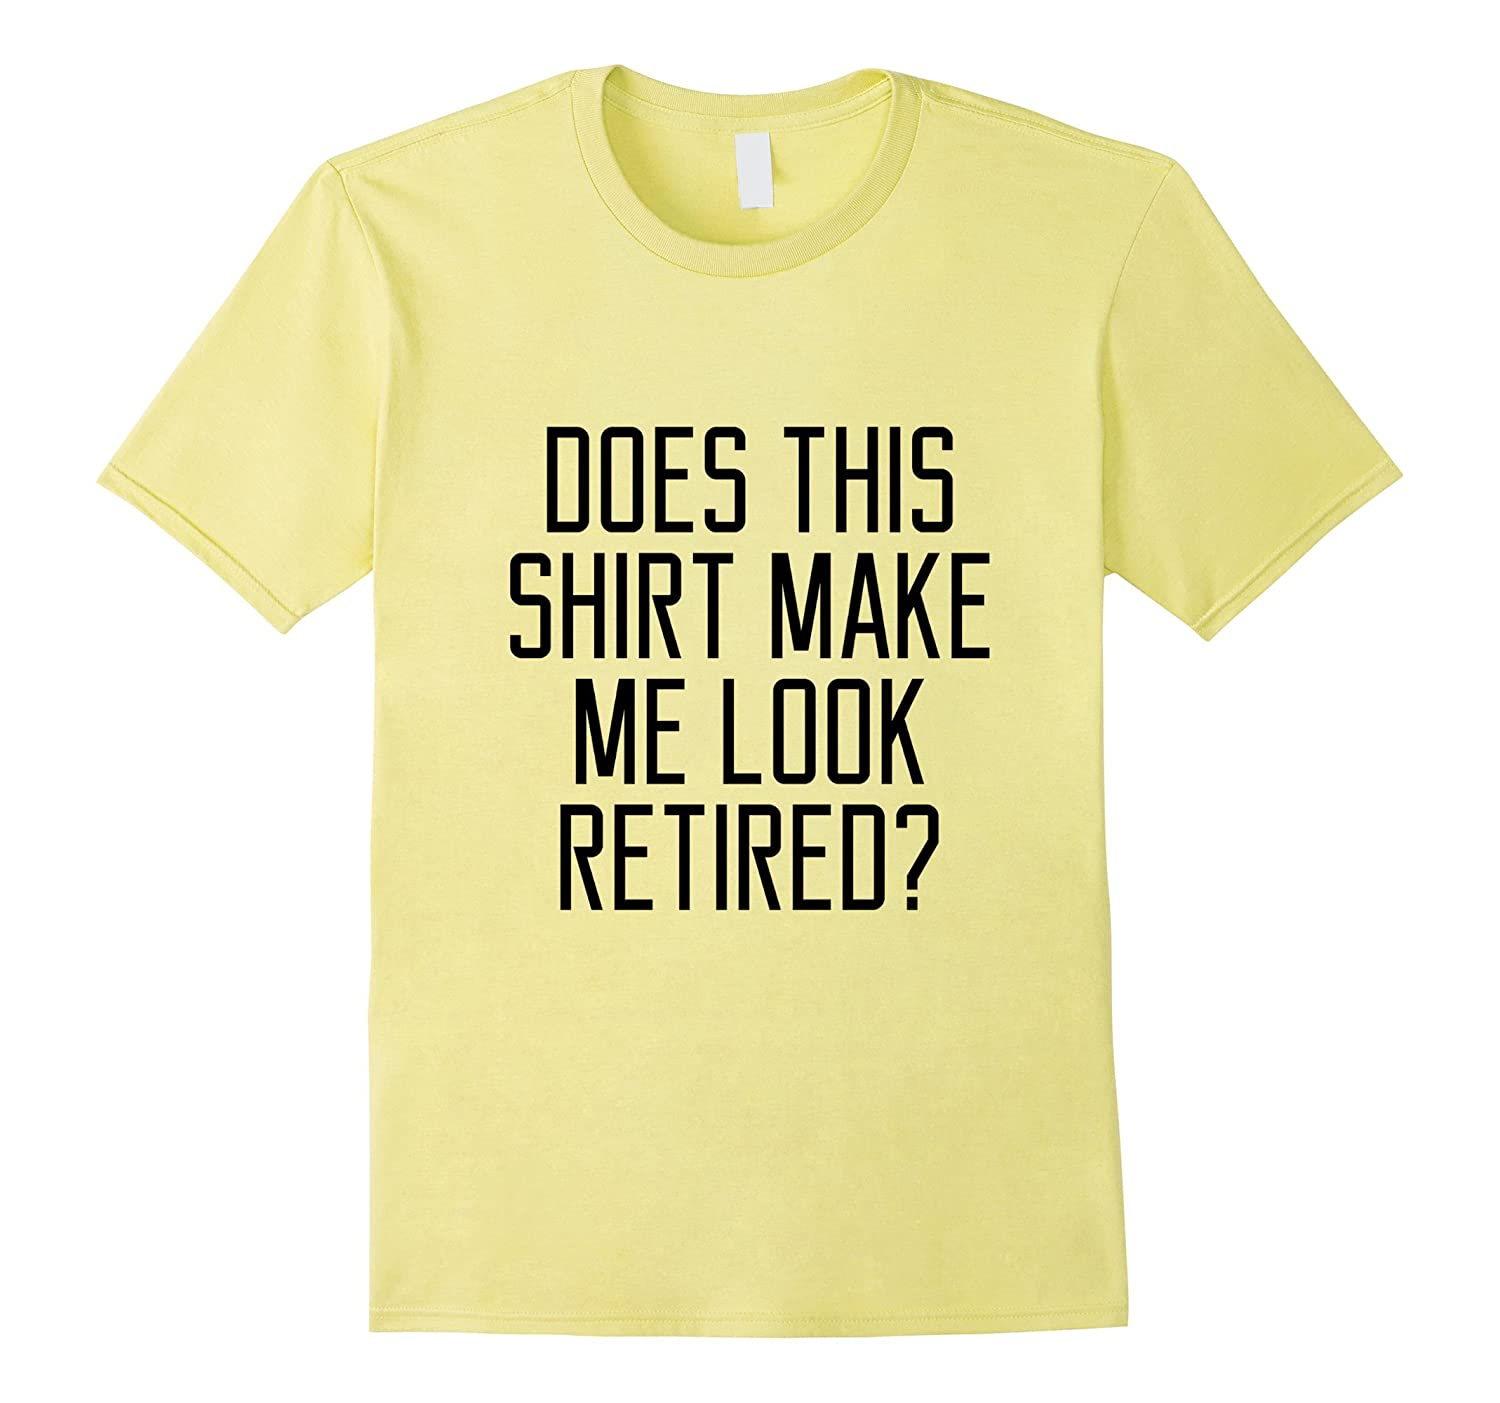 DOES THIS SHIRT MAKE ME LOOK RETIRED Funny quote T-shirt-Vaci